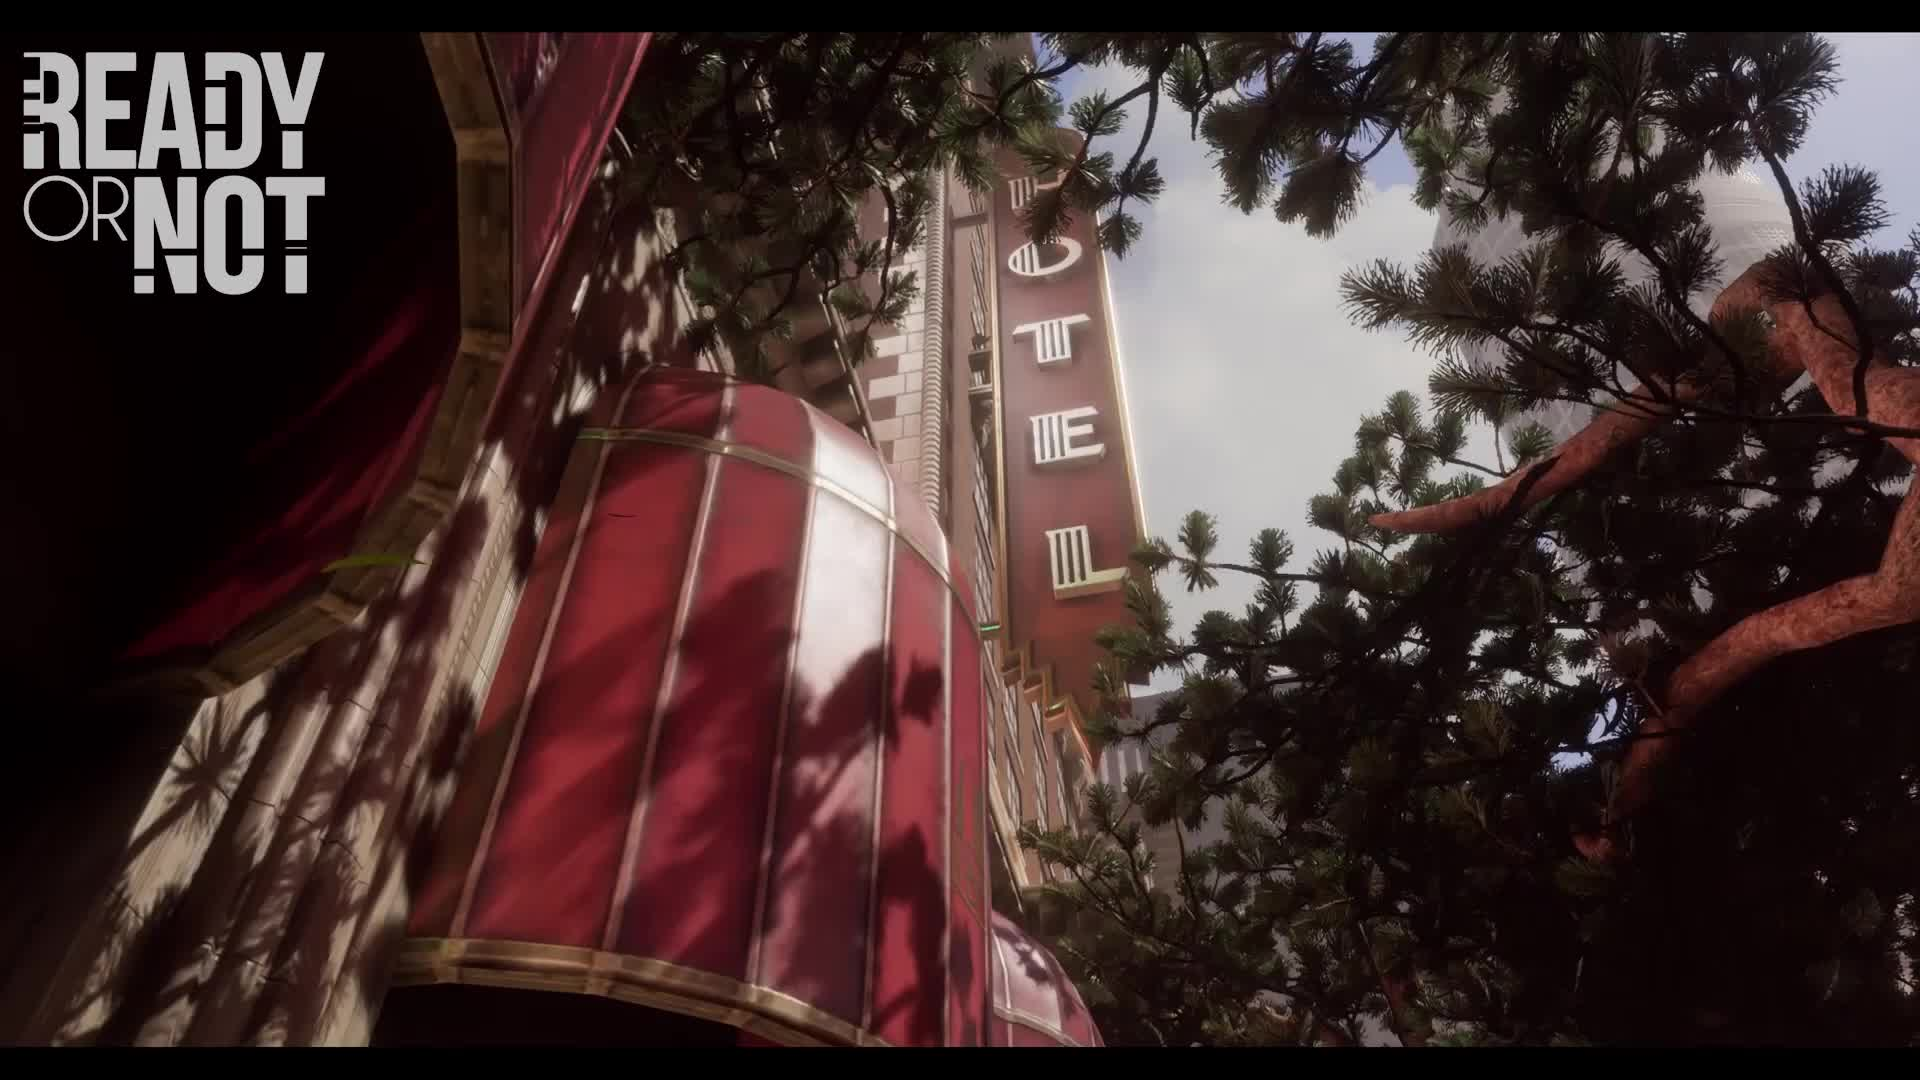 fbi, game, police, swat, video, videogame, Ready or Not trailer gameplay hotel GIFs